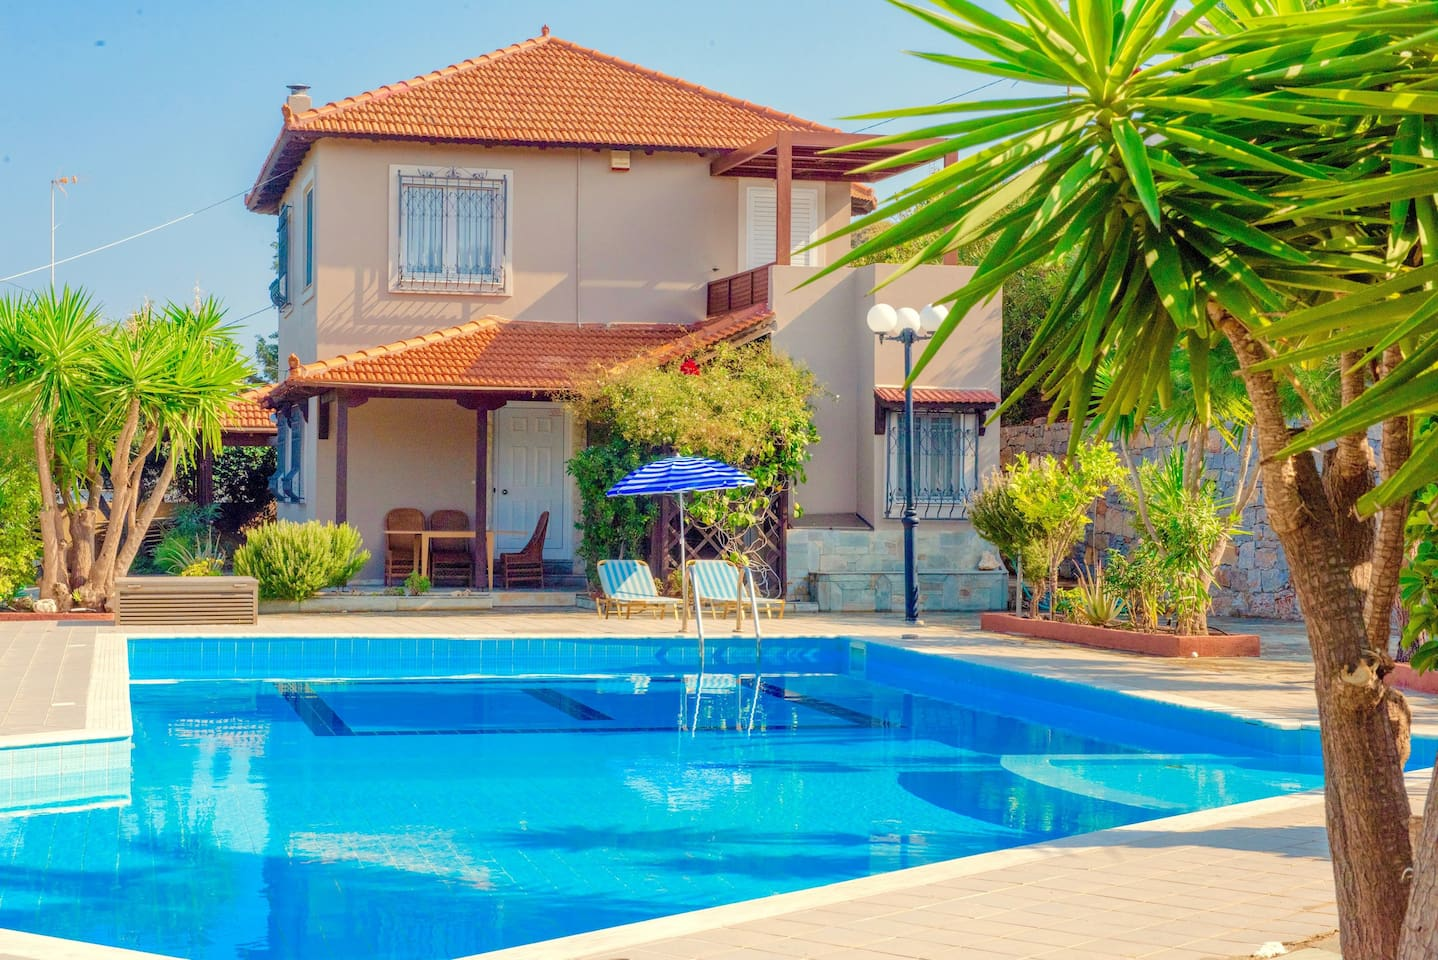 Welcoming Villa Apollo with private pool, 3 bedrooms, tennis court and amazing sea views. Great location just 1.5km away from the beach.